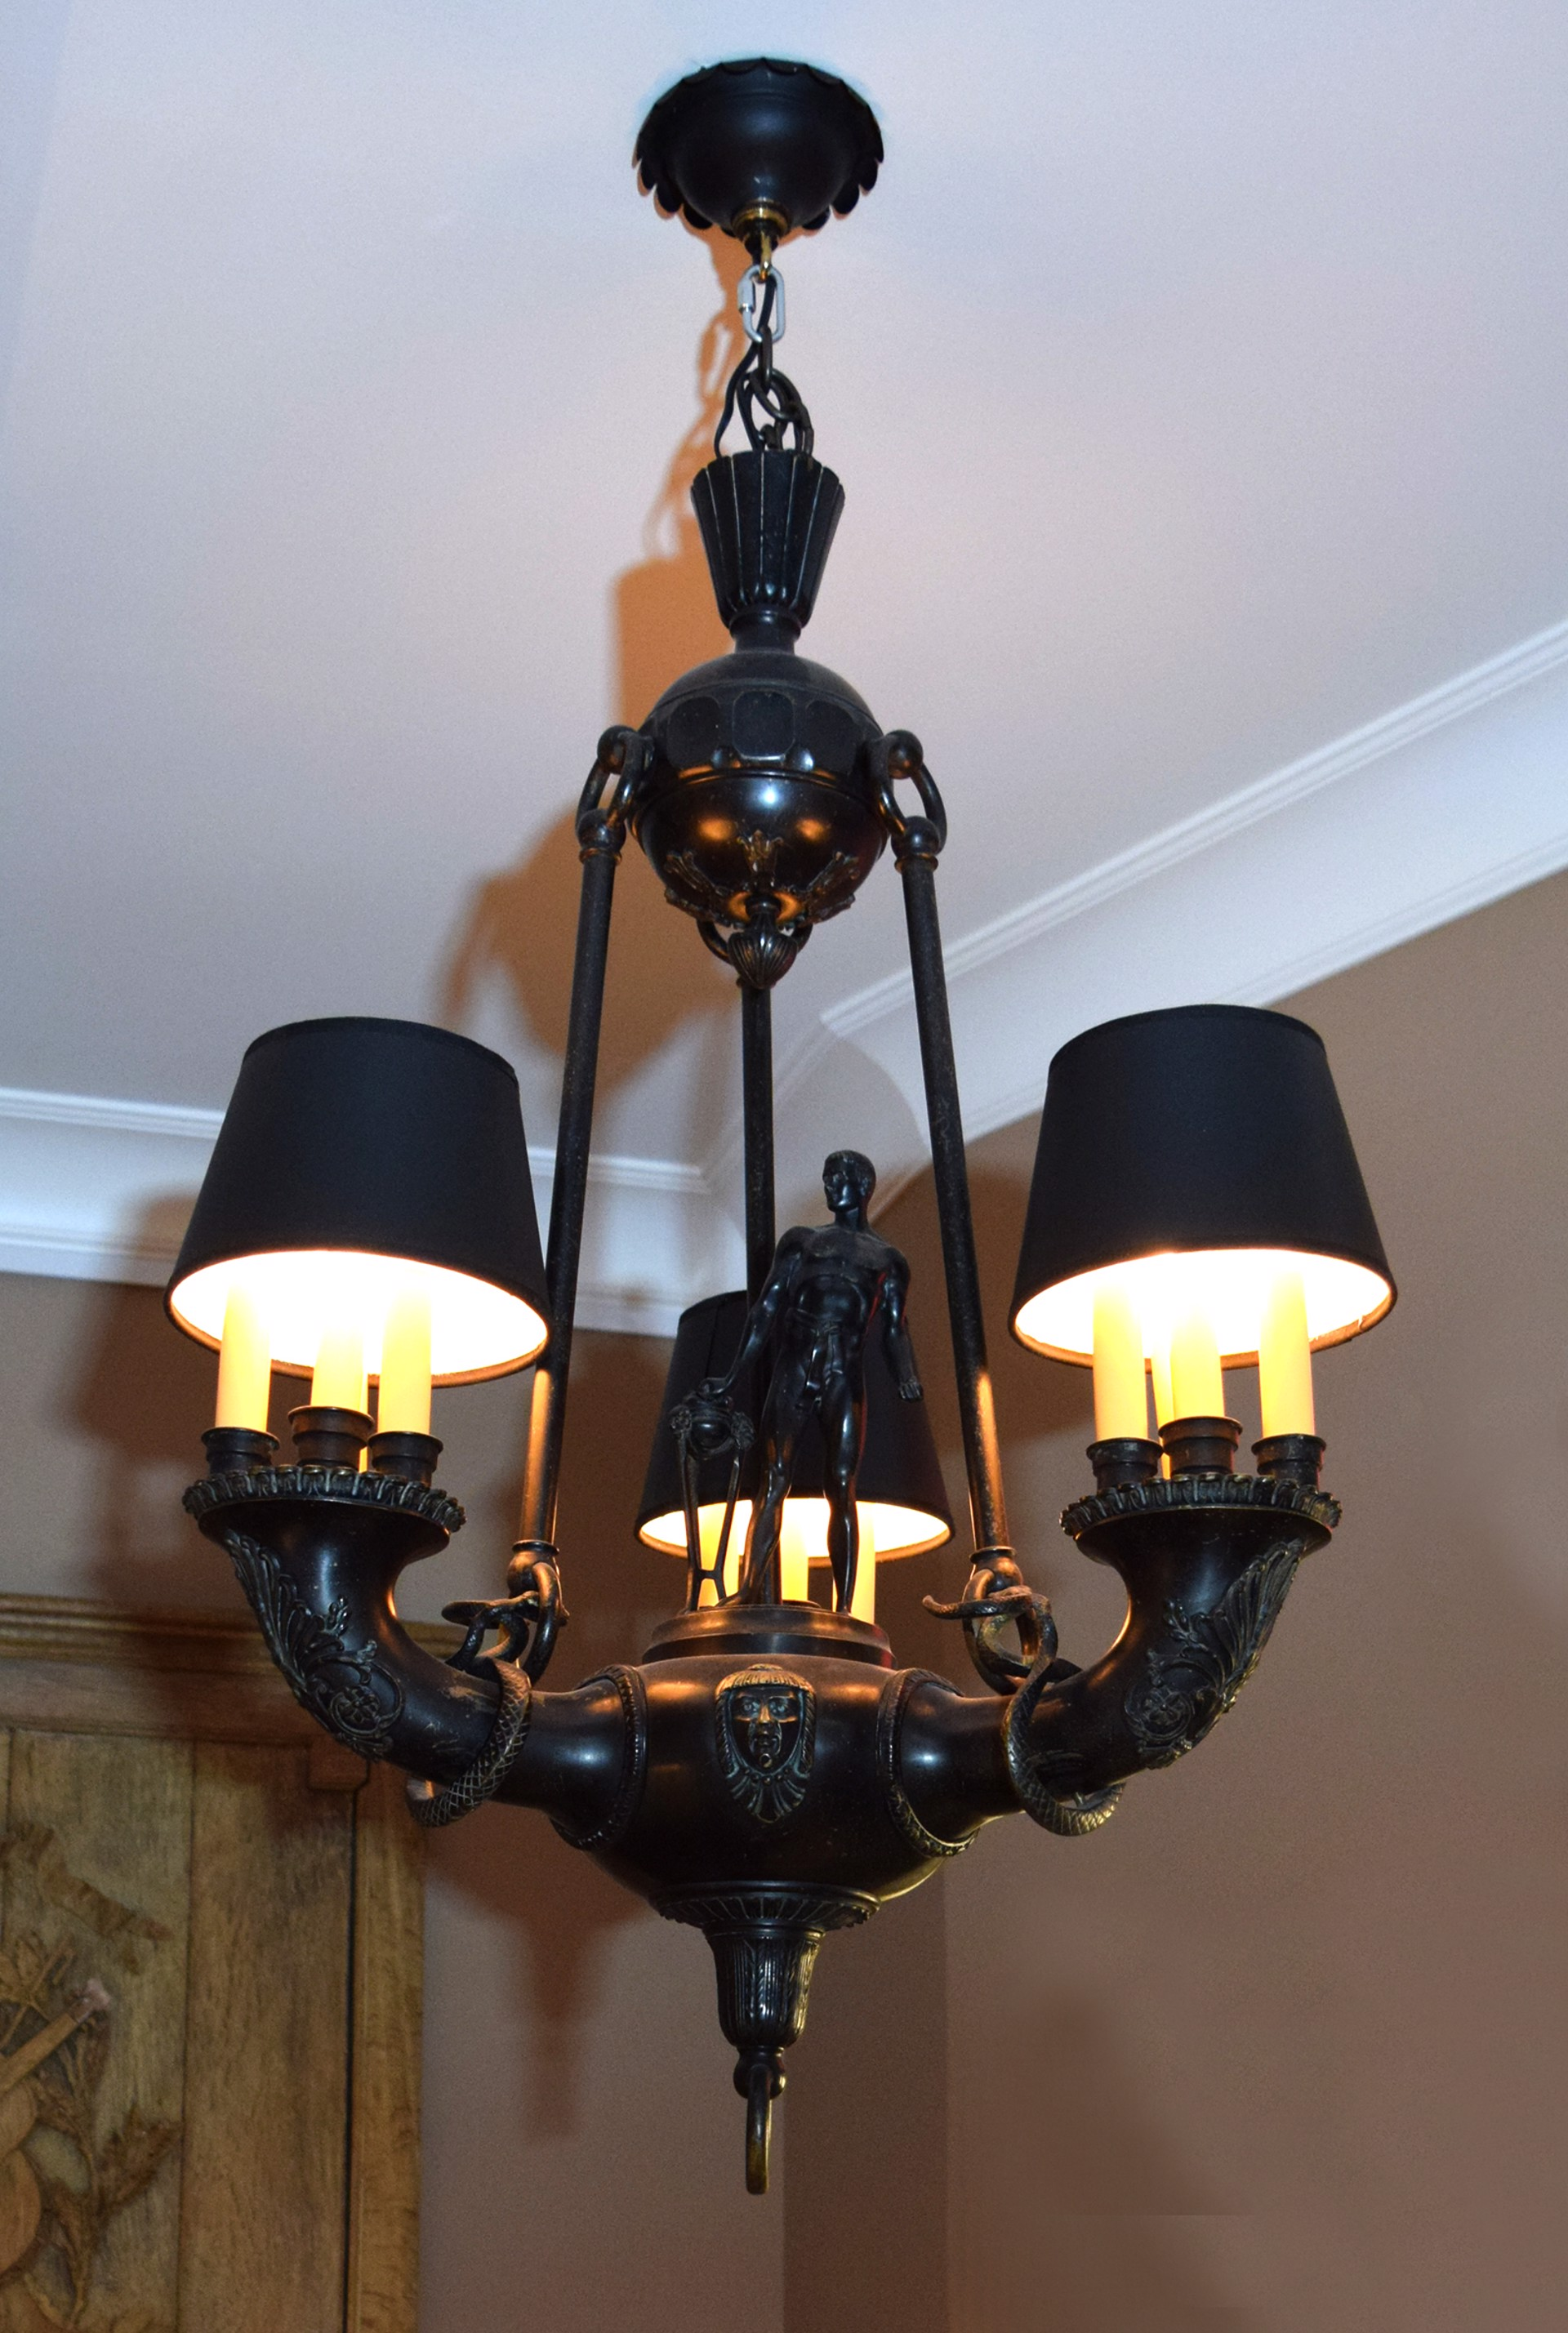 GERMAN PATINATED BRONZE CHANDELIER BY OTTO SCHMIDT-HOFER  by Otto Schmidt-Hofer